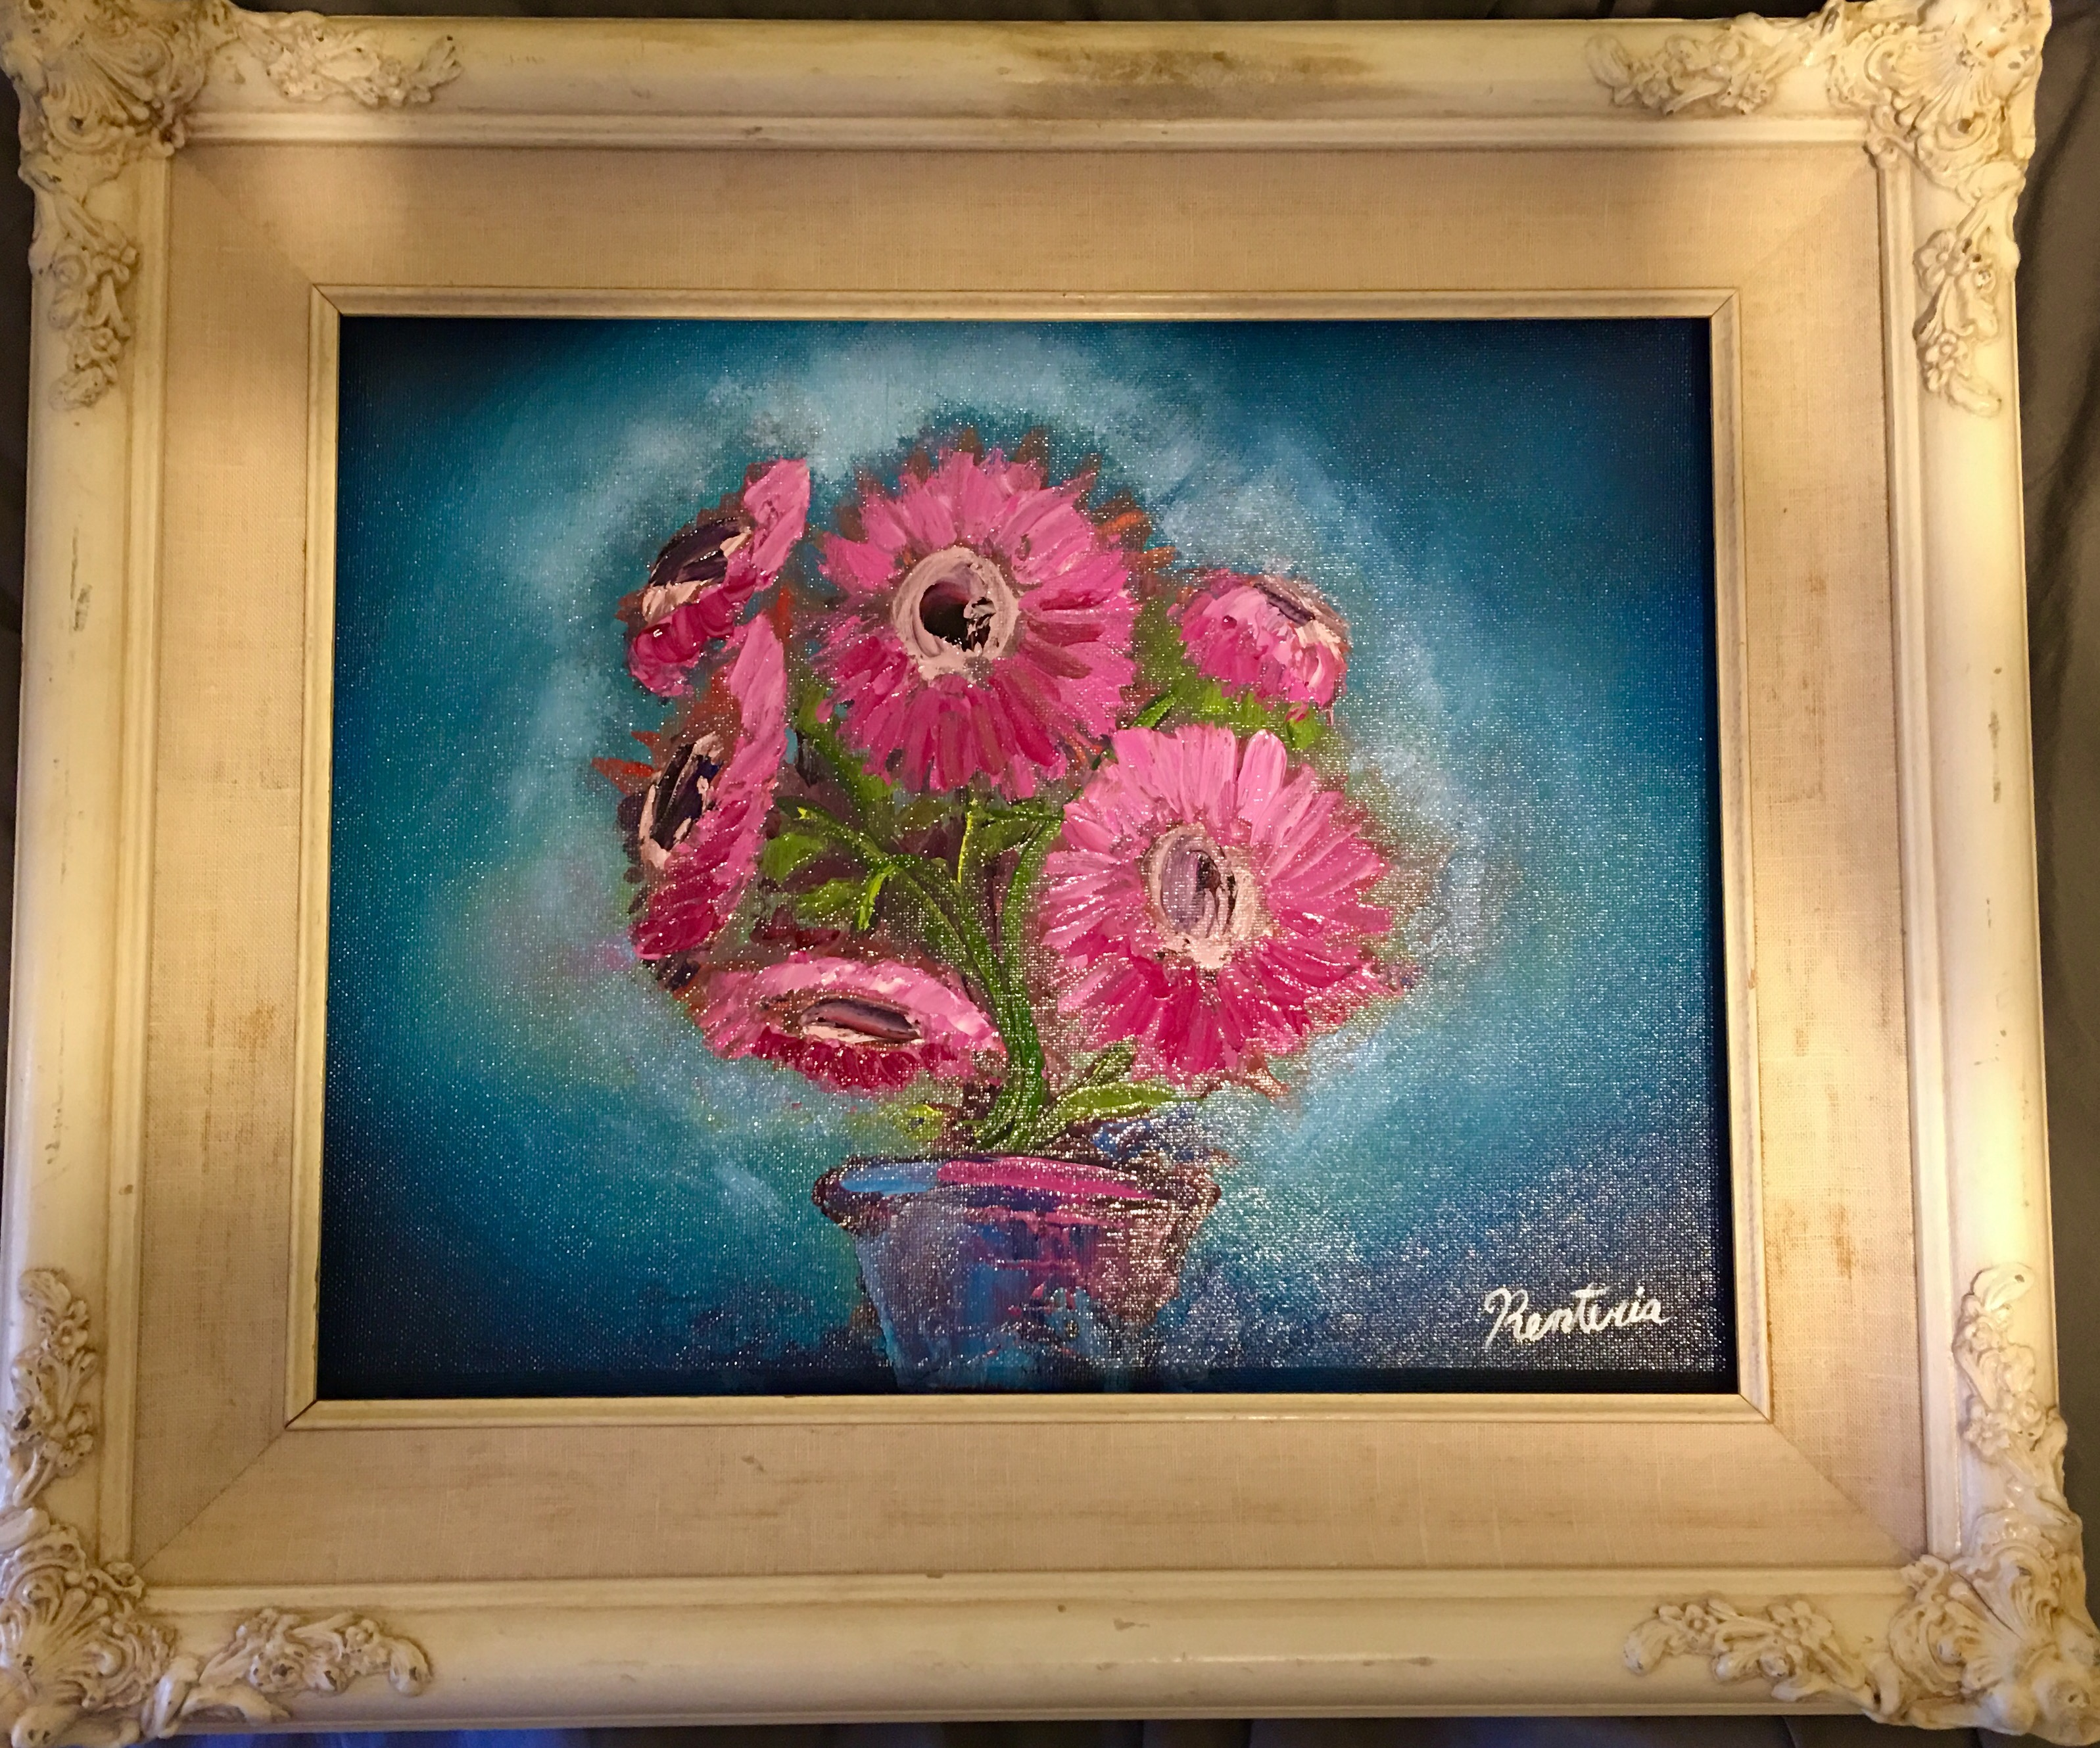 Flower decor for your home Art Prints for Sale by